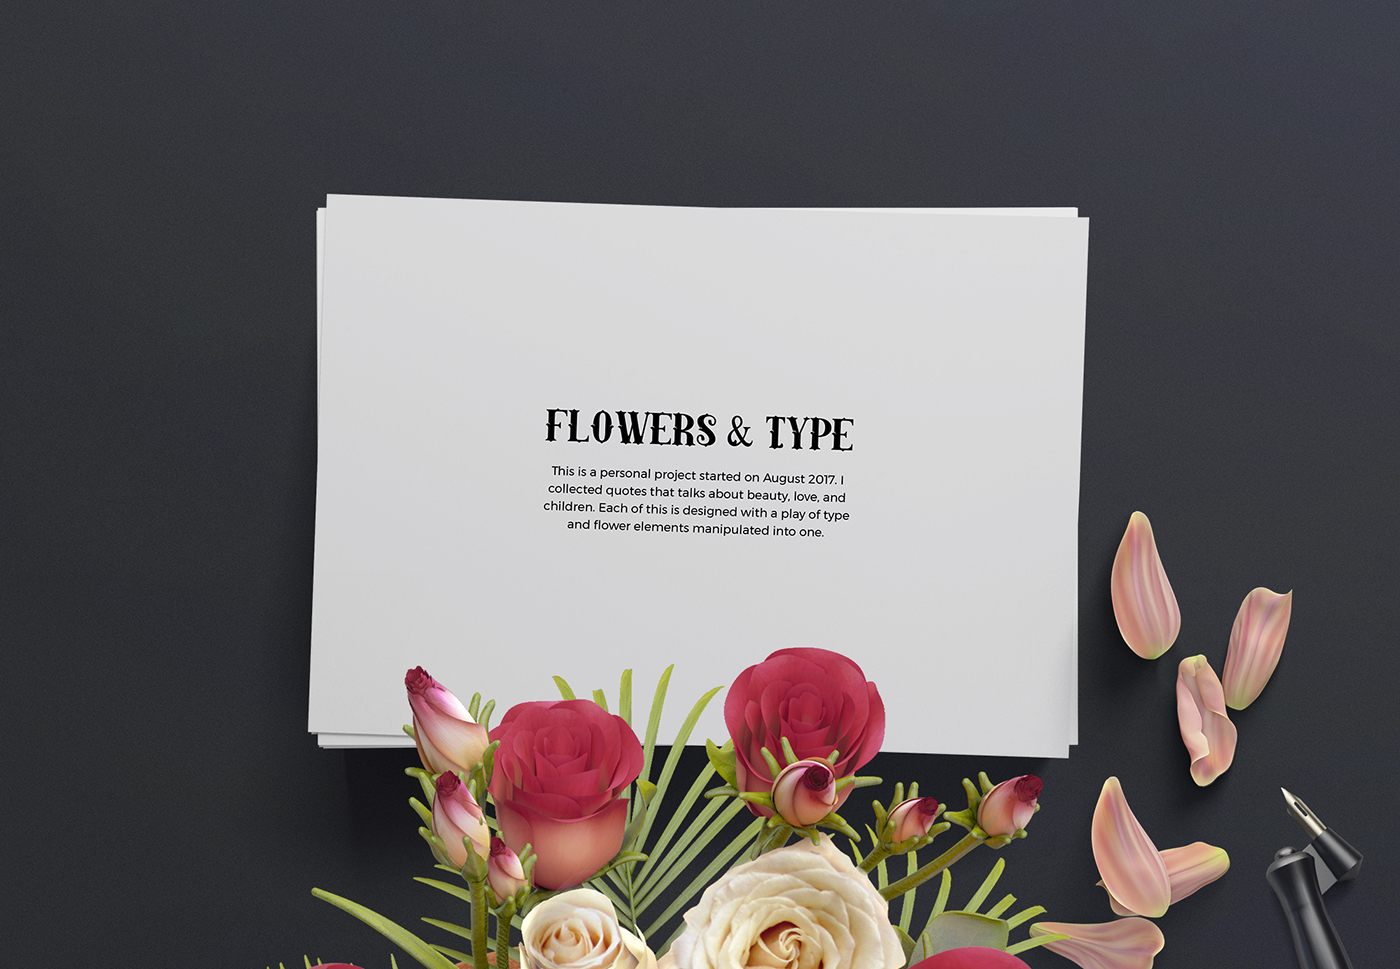 Flowers type on behance if you liked my personal project drop by some comments suggestions and improvements are very welcome follow me on izmirmasajfo